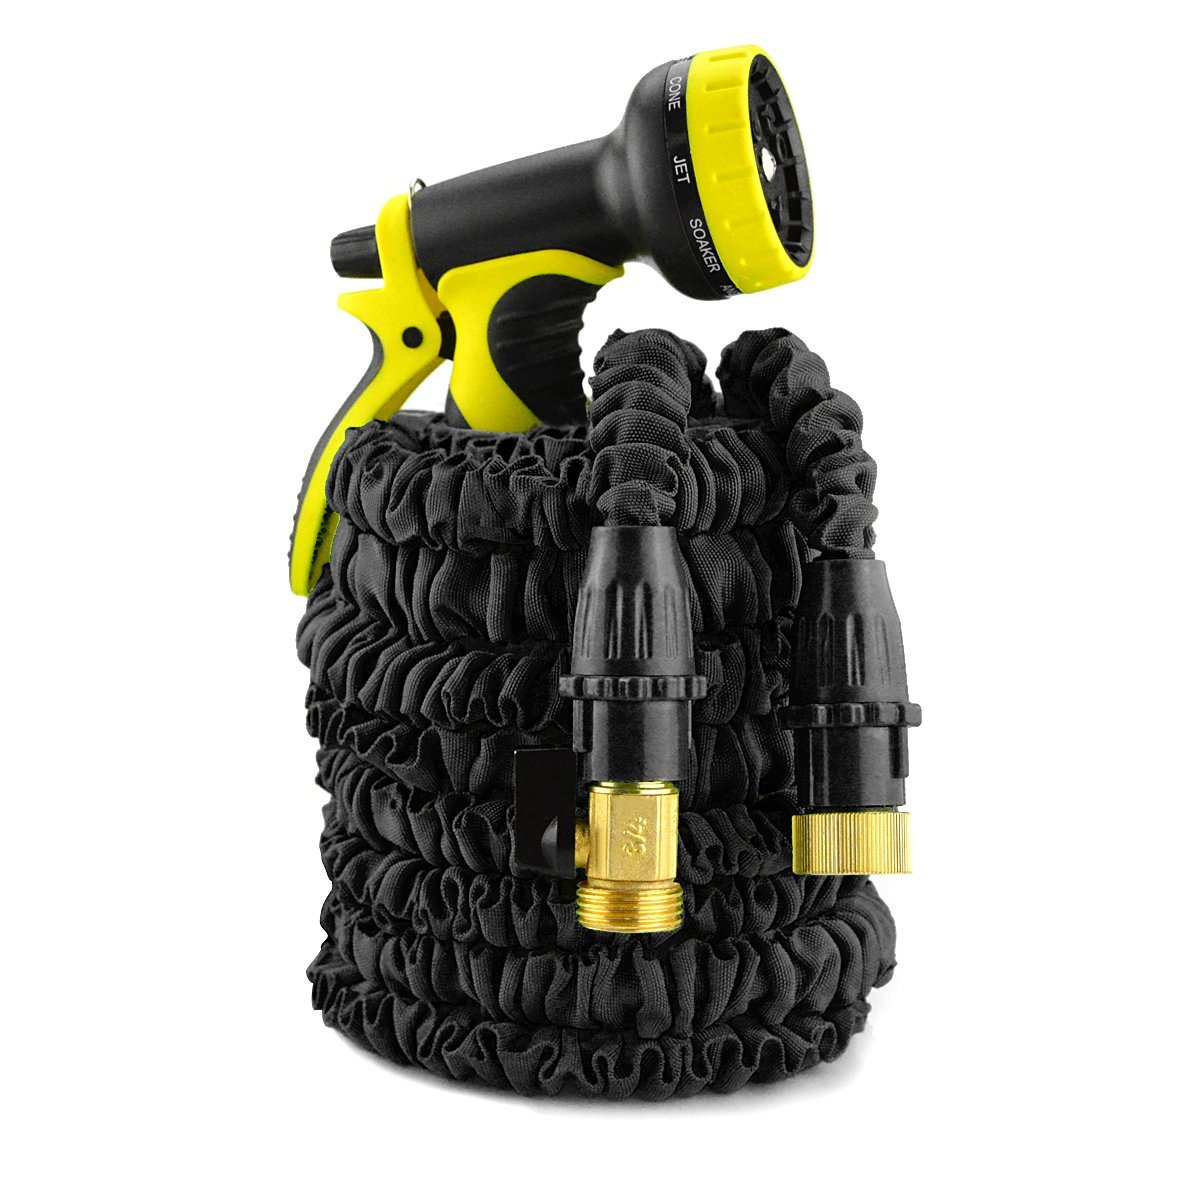 IBeaty Updated Lightweight 100ft Expandable Garden Hose Triple Layer Latex Core Magic Flexible Water Hose with 3/4Inch Solid Brass Ends and 9 Position Spray Nozzle Black